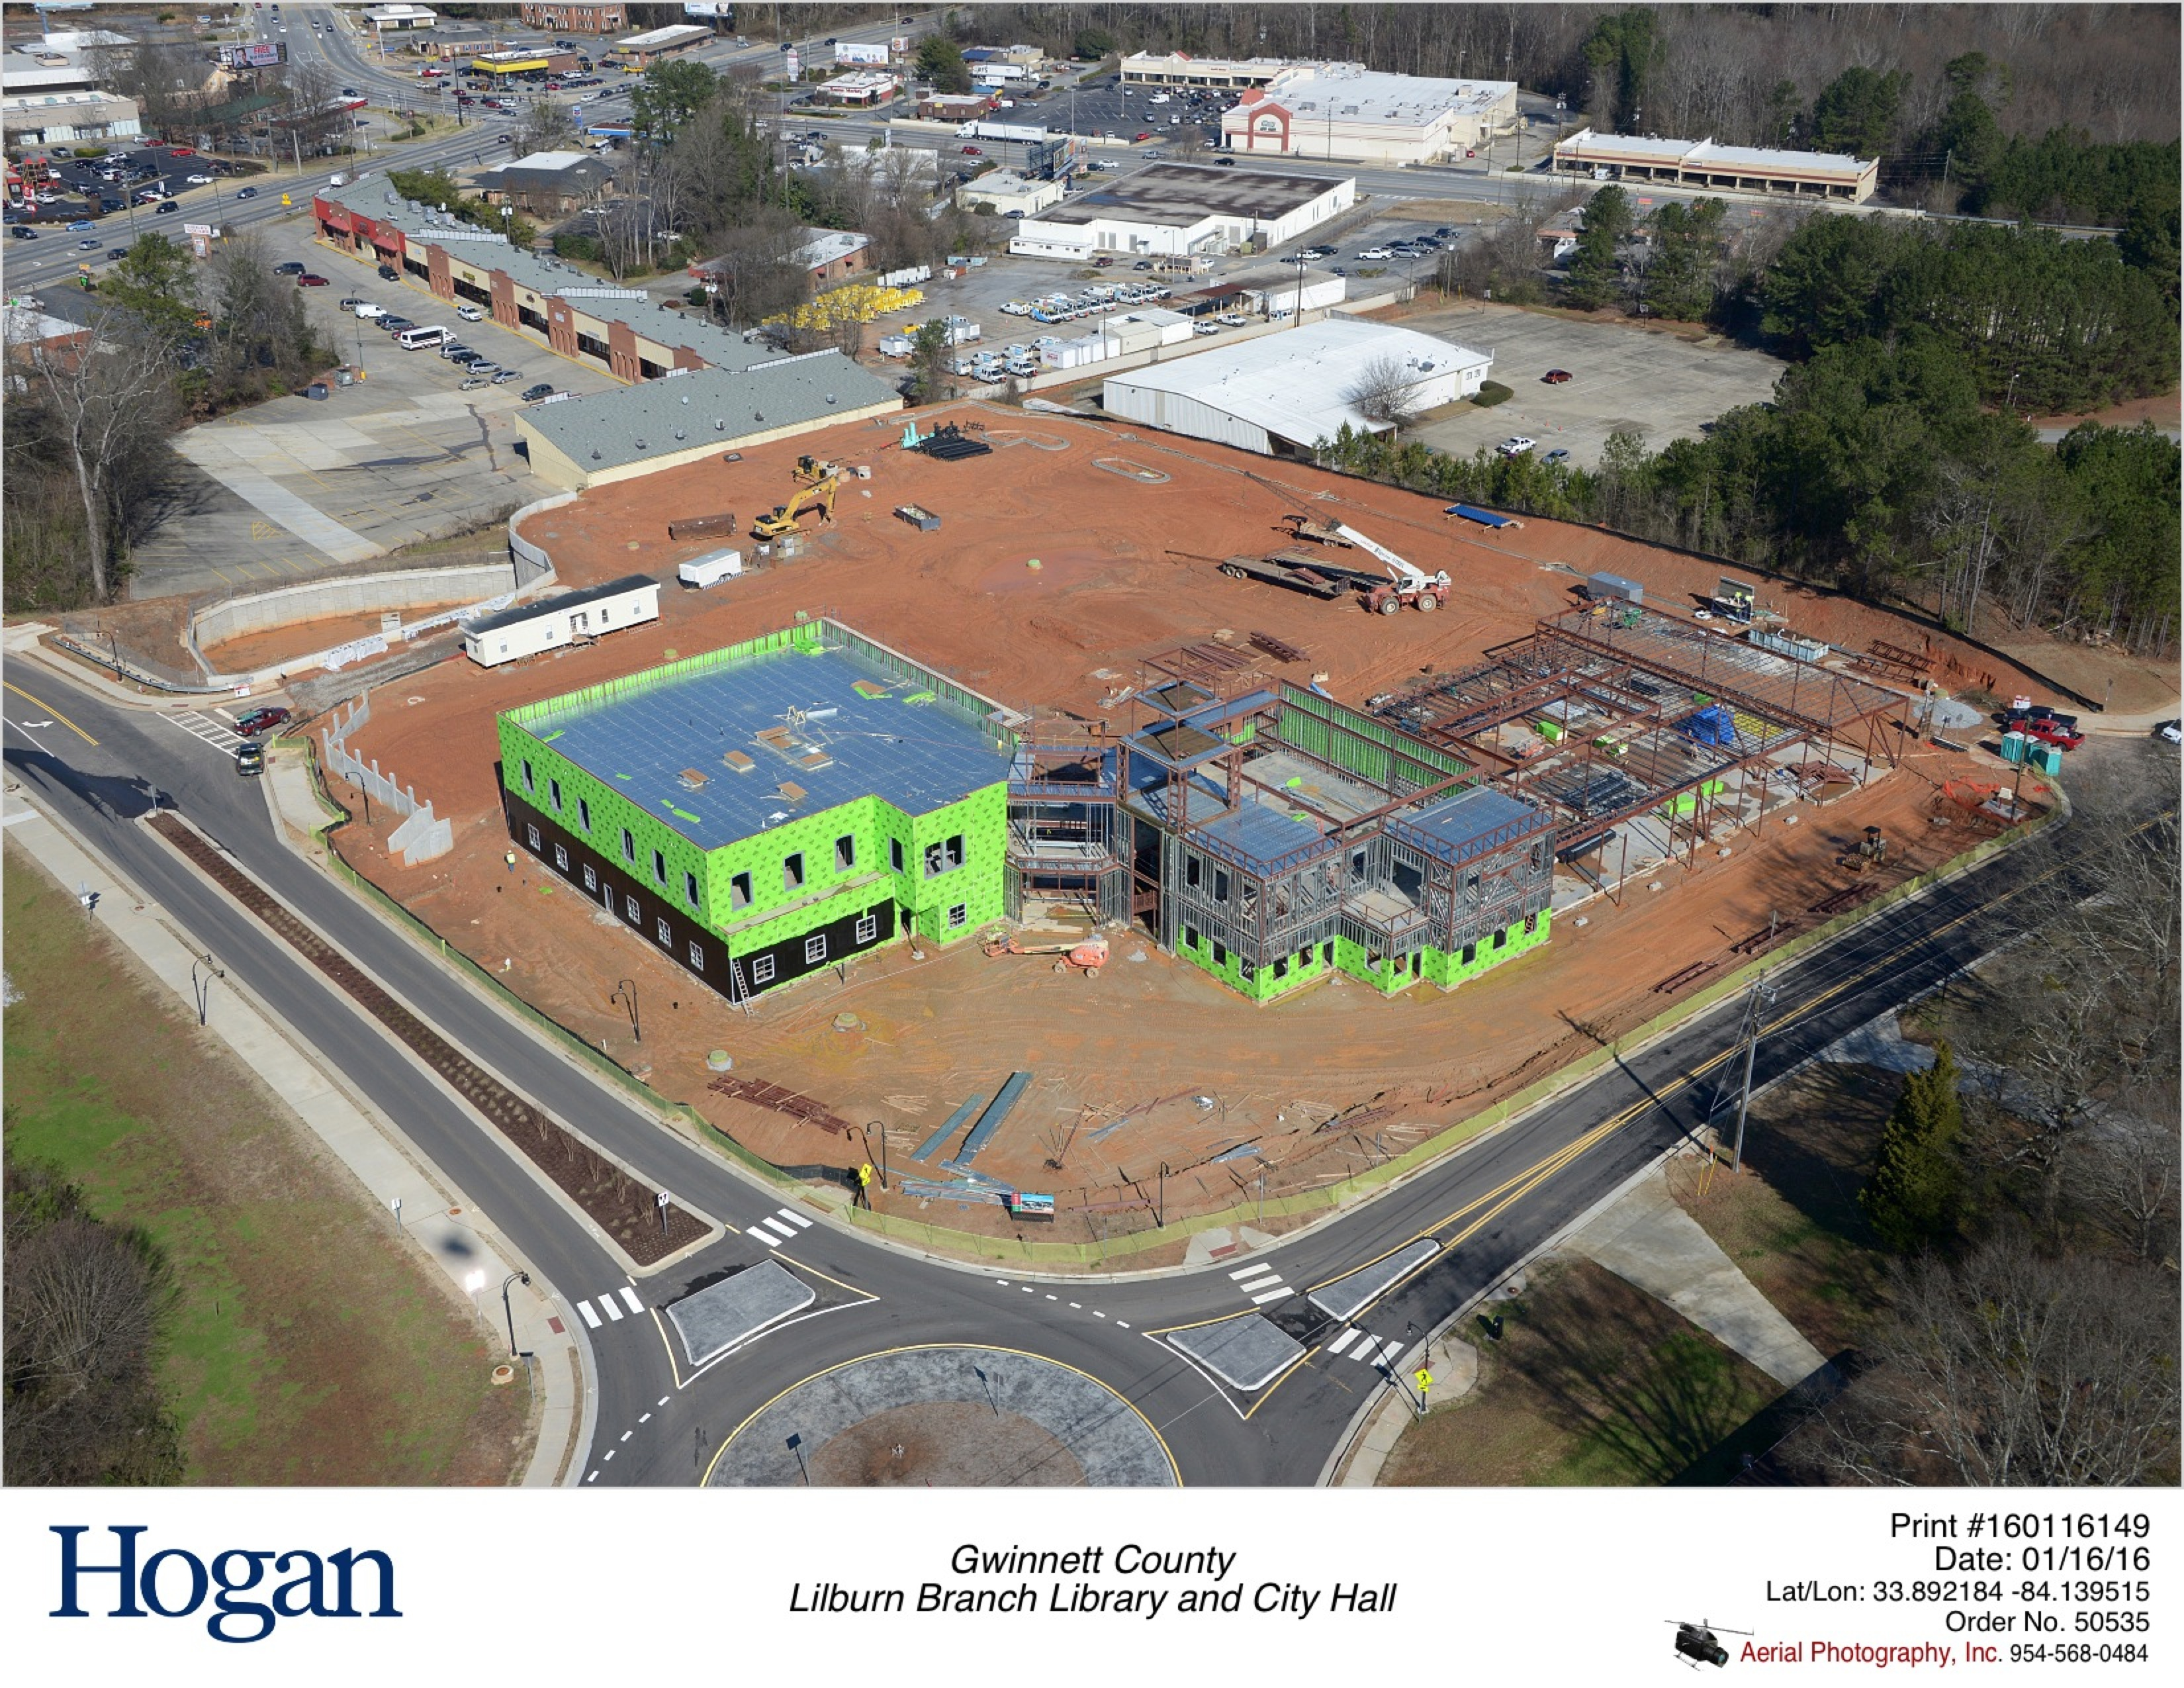 January 2016 Aerial Photo of City Hall and Library Construction Site